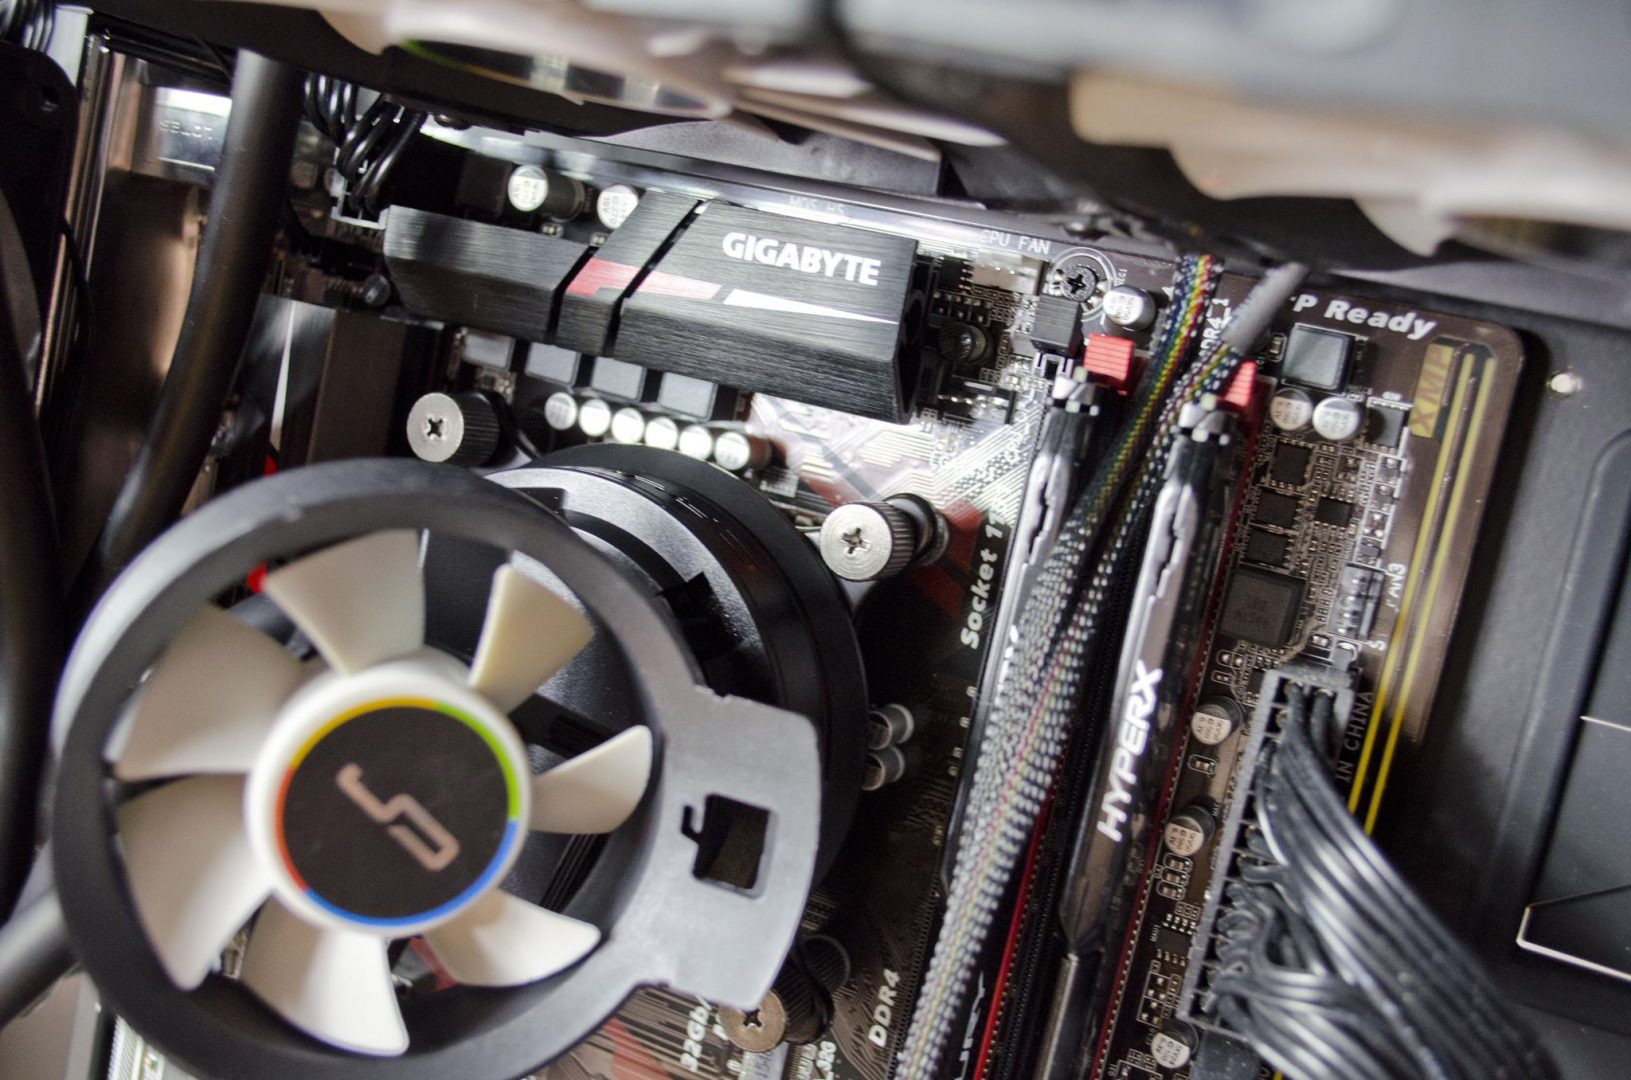 Cryorig a40 2400mm ultimate aio cpu cooler review_14